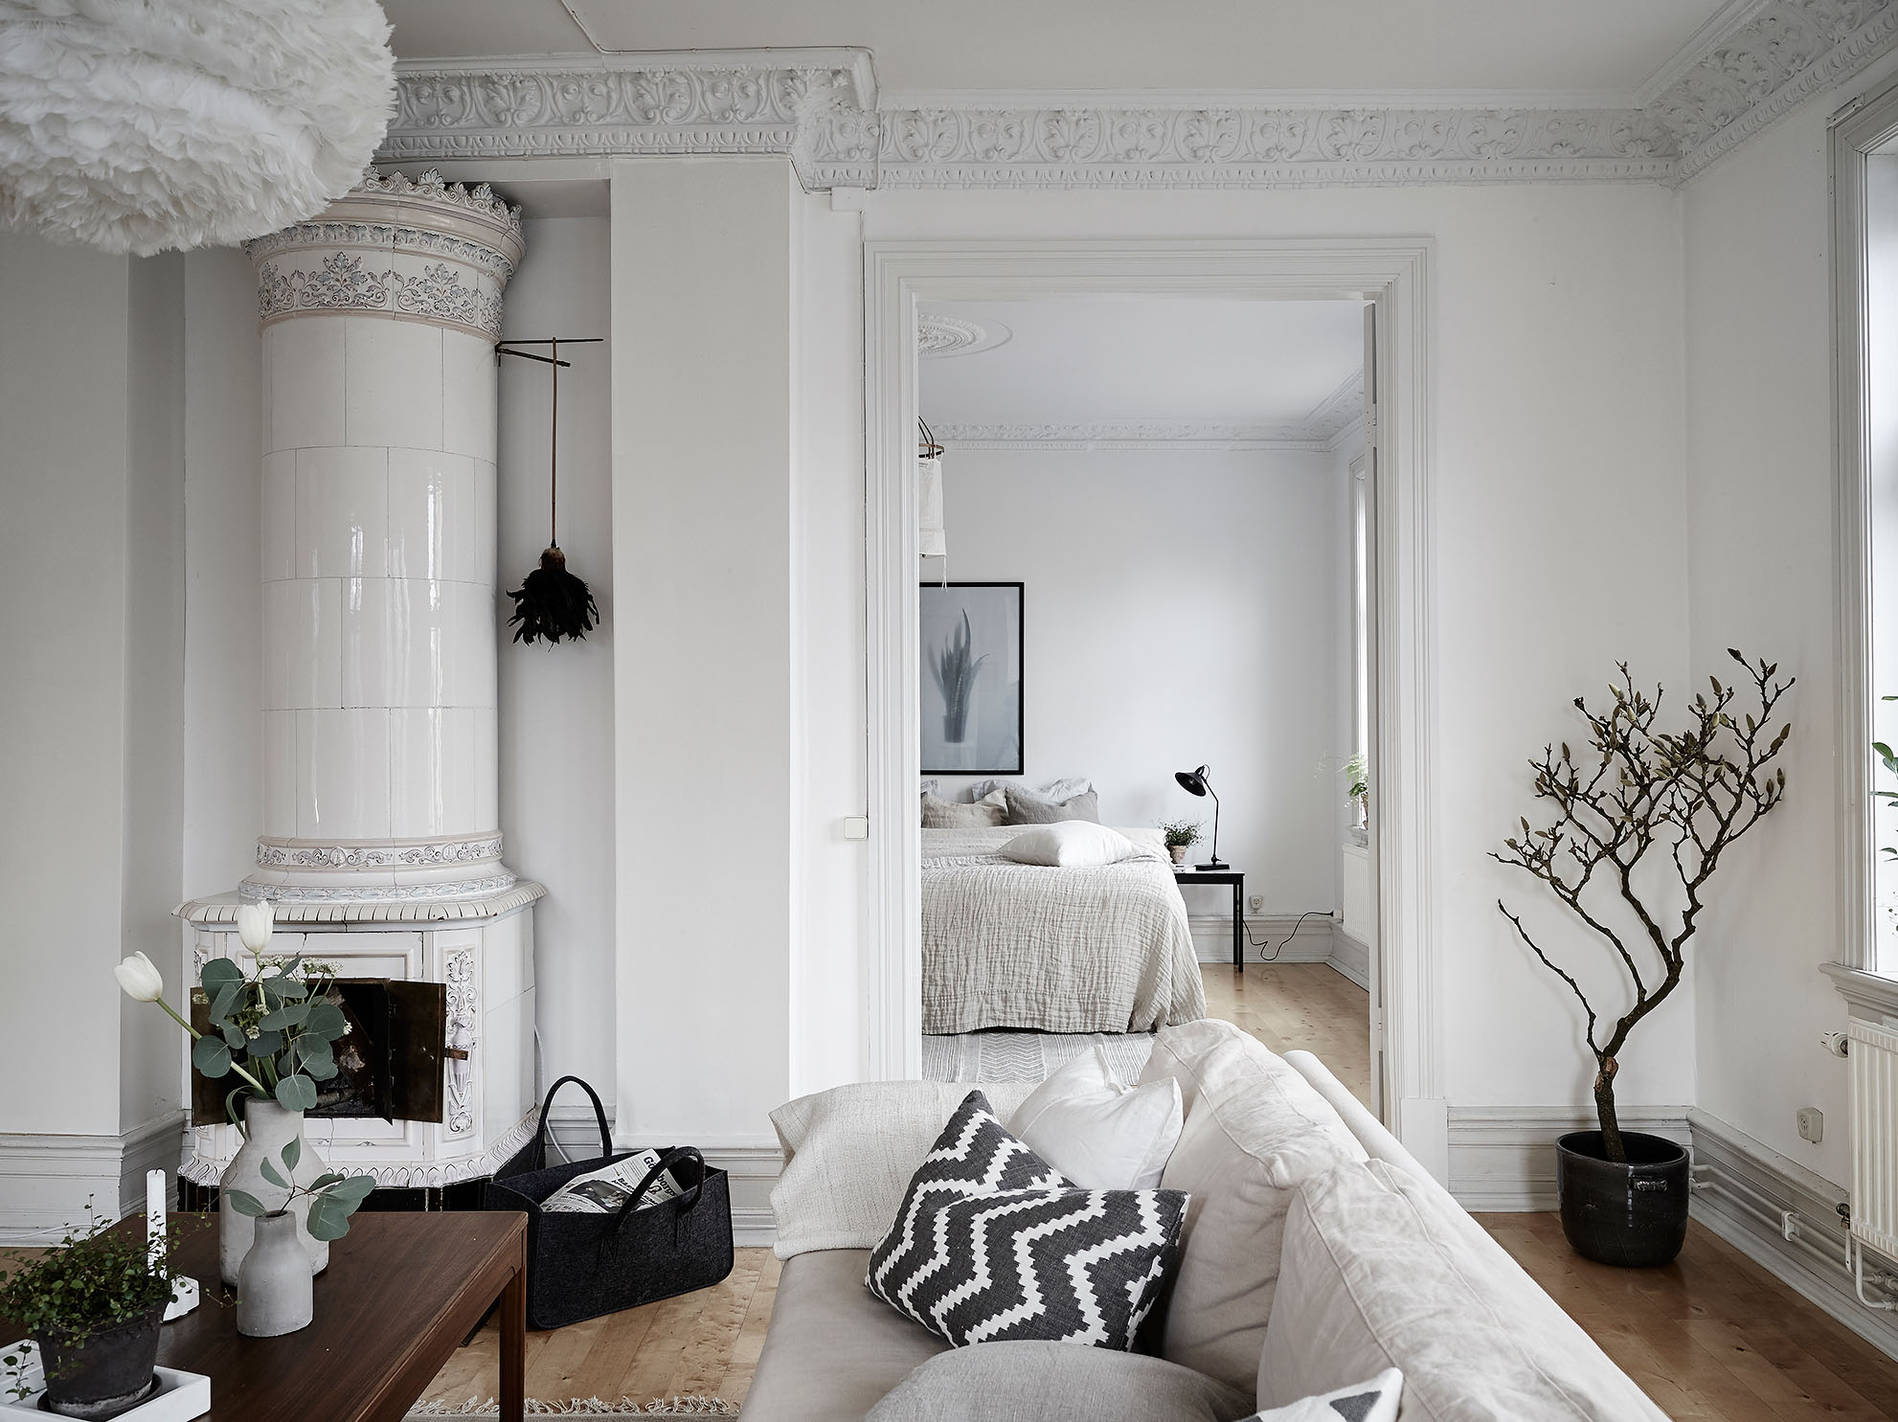 mid century modern interior in an old building coco lapine designcoco lapine design. Black Bedroom Furniture Sets. Home Design Ideas